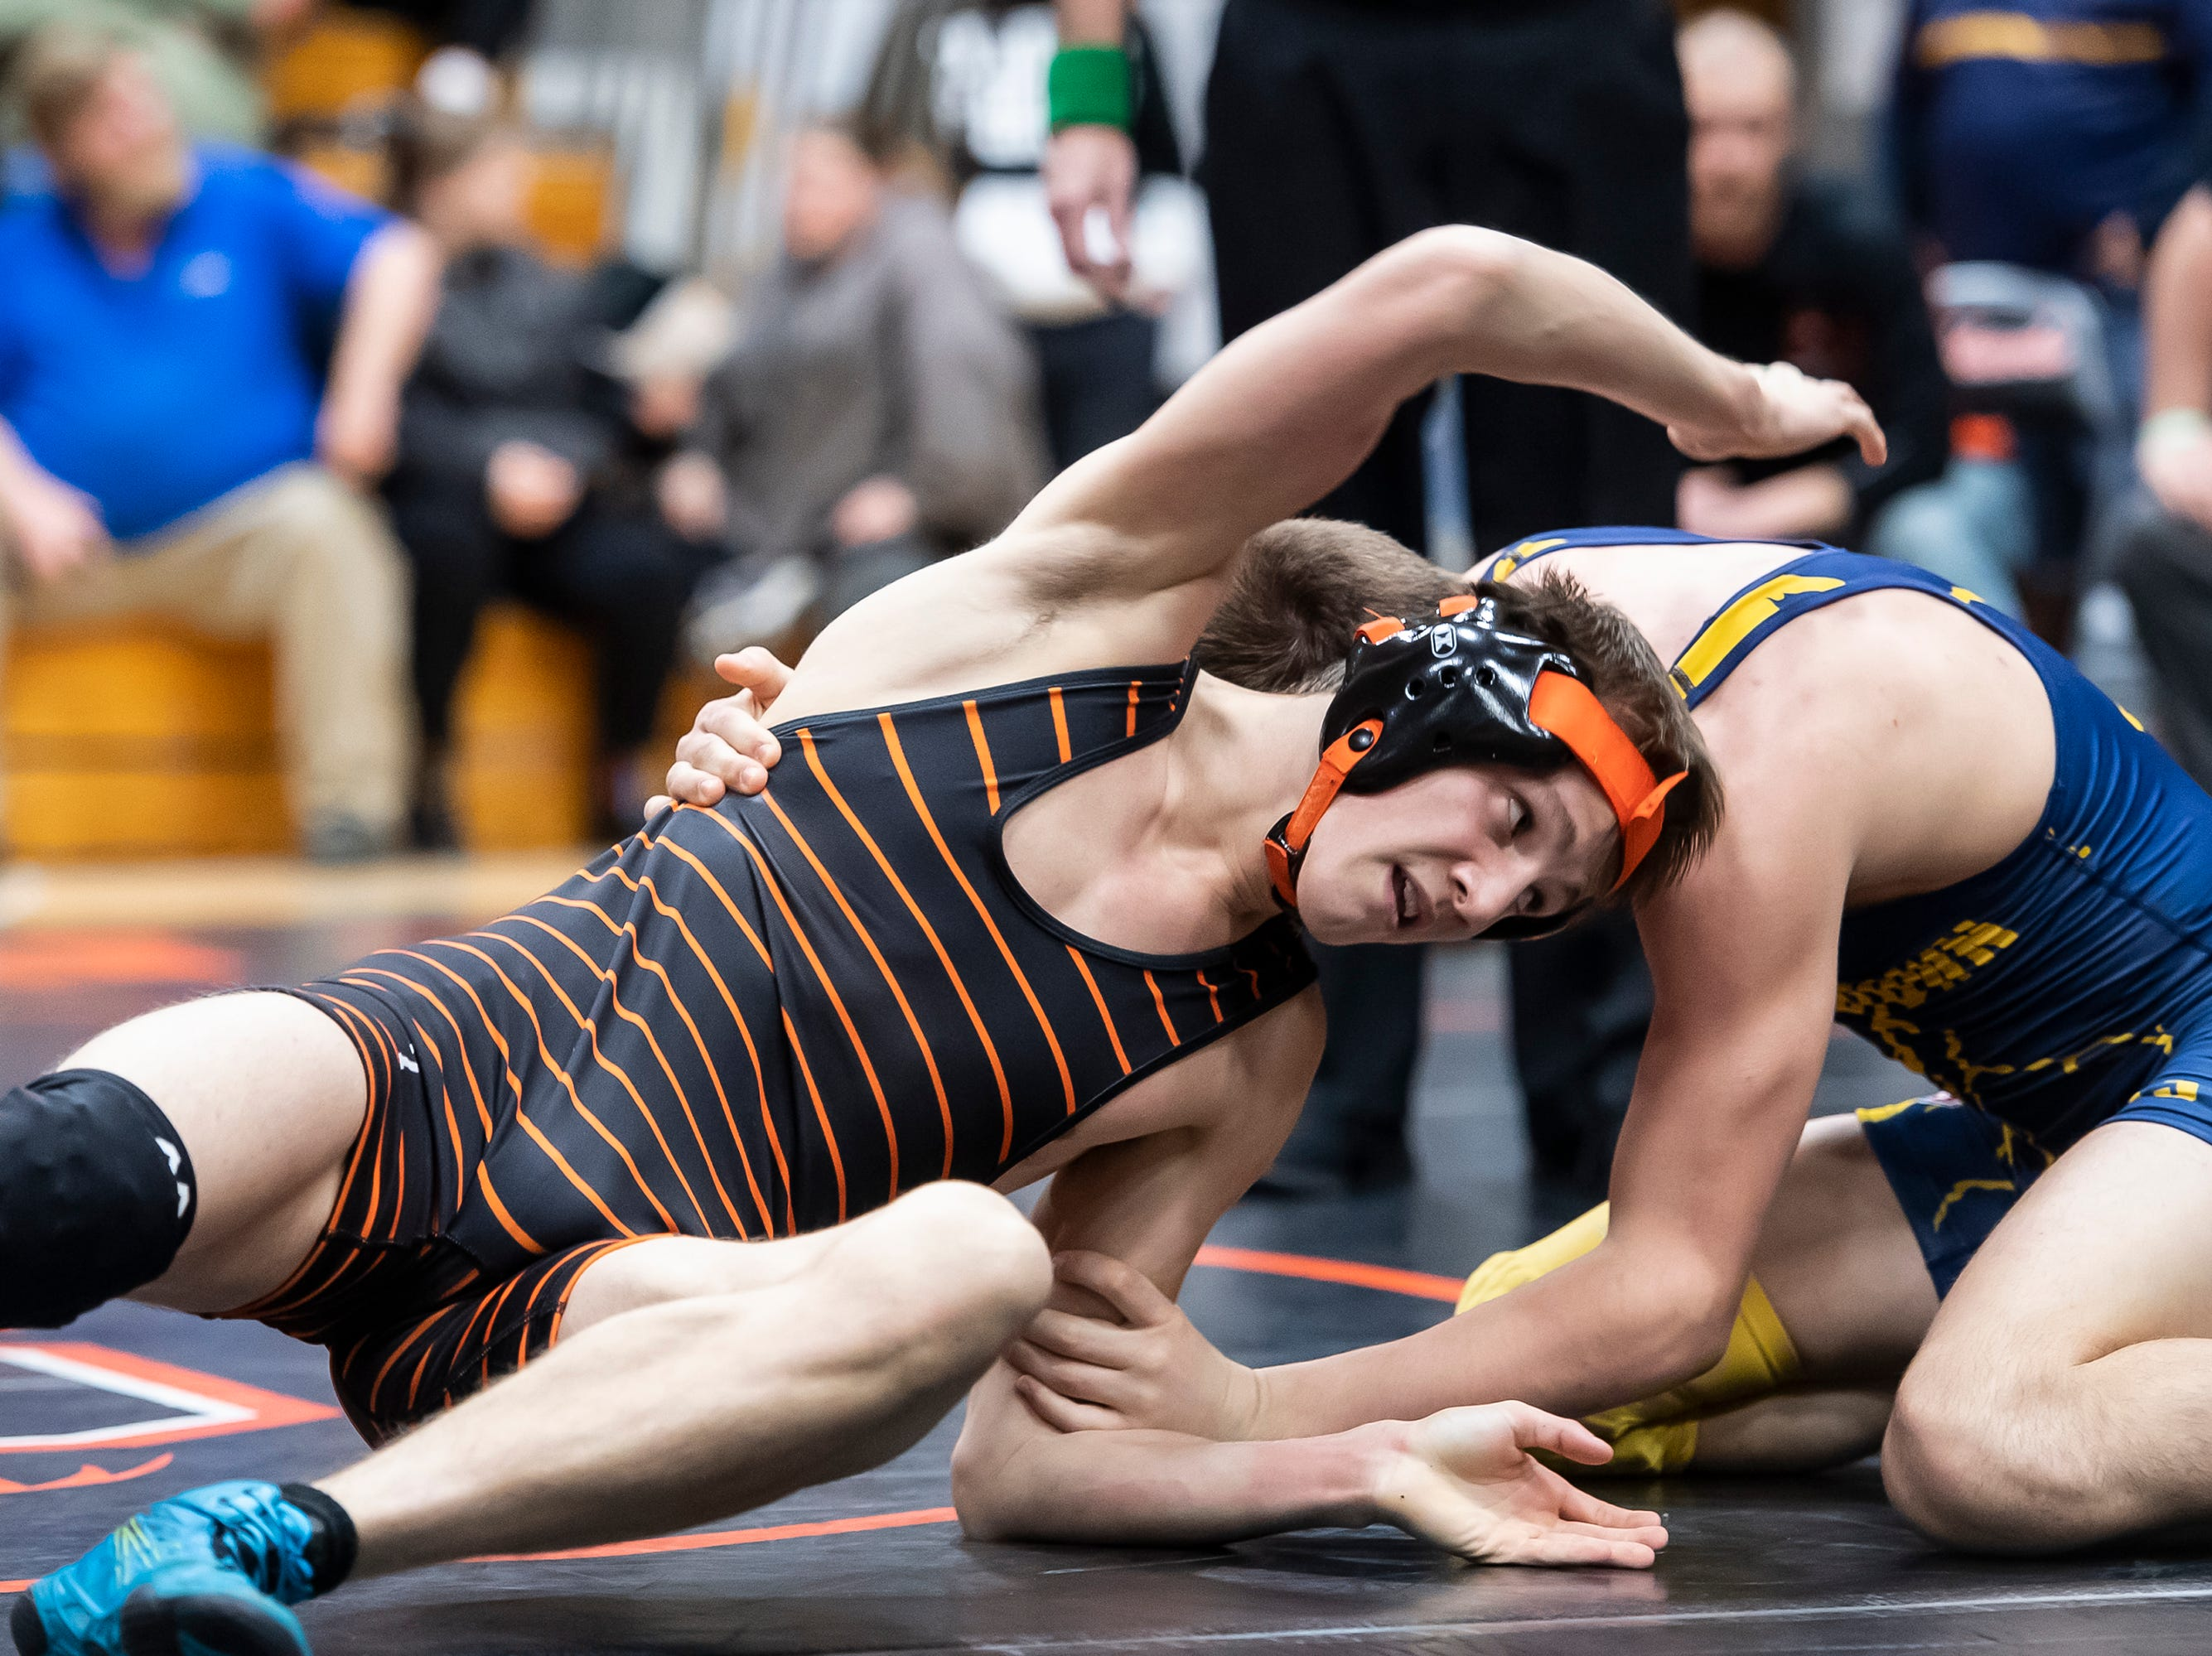 Hanover's Dalton Kirby, left, wrestles Littlestown's Ayden Dillon during a 126-pound bout during the first day of the District 3 Class 2A Section I tournament at Susquenita High School Friday, February 15, 2019. Dillon won by fall.